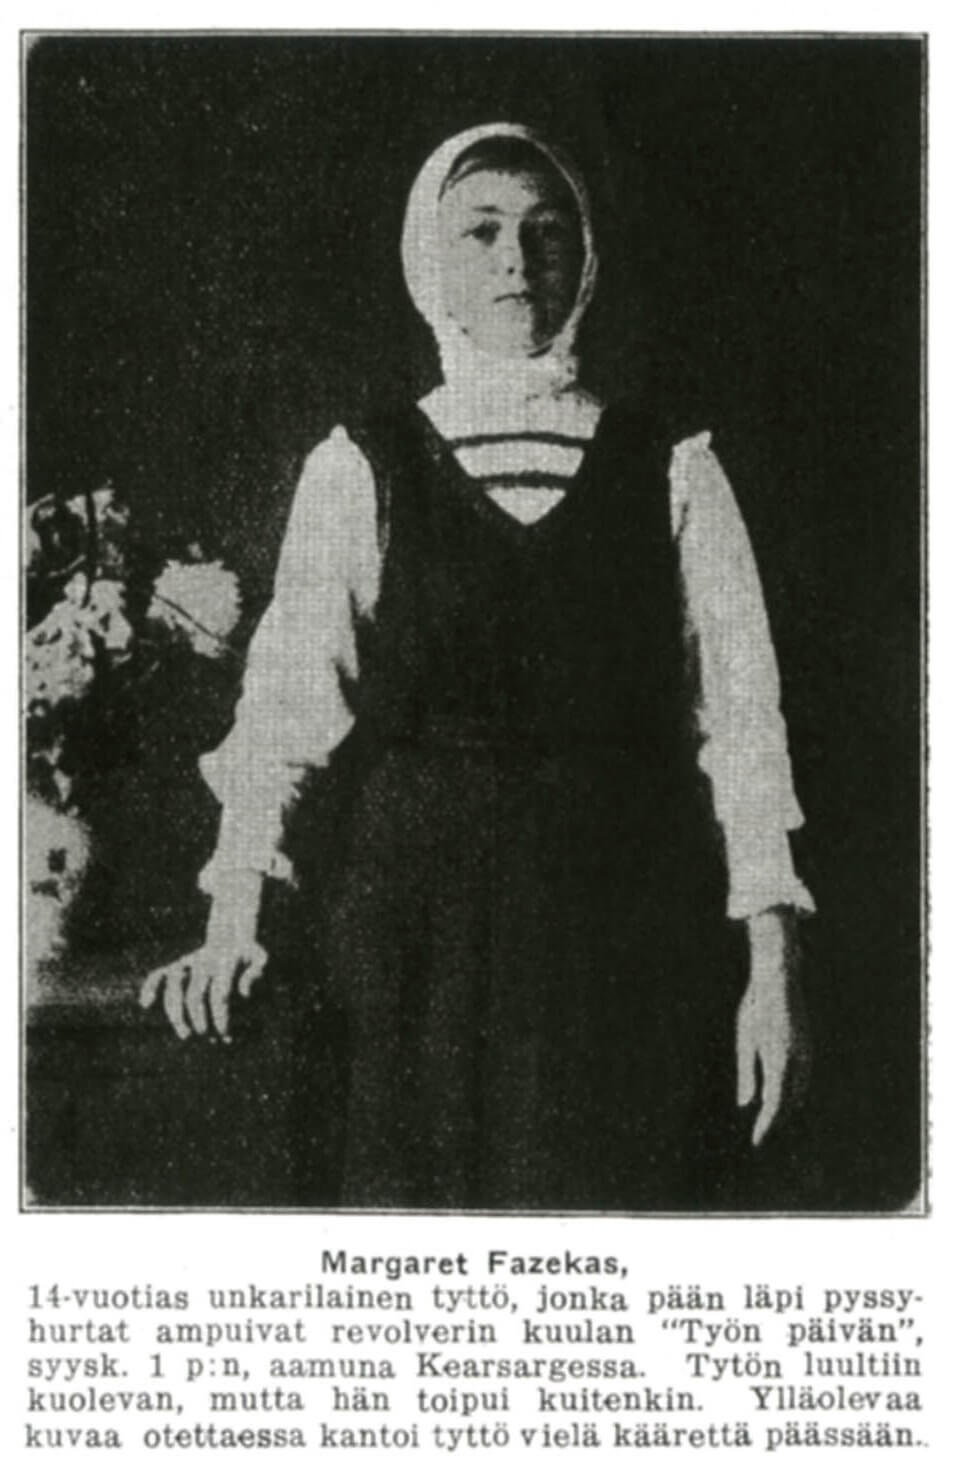 Margaret Fazekas, a 14-year-old girl shot in the back of the head during a Copper Country Labor Day parade in 1913.  Published in Työmiehen Joulu 1913.